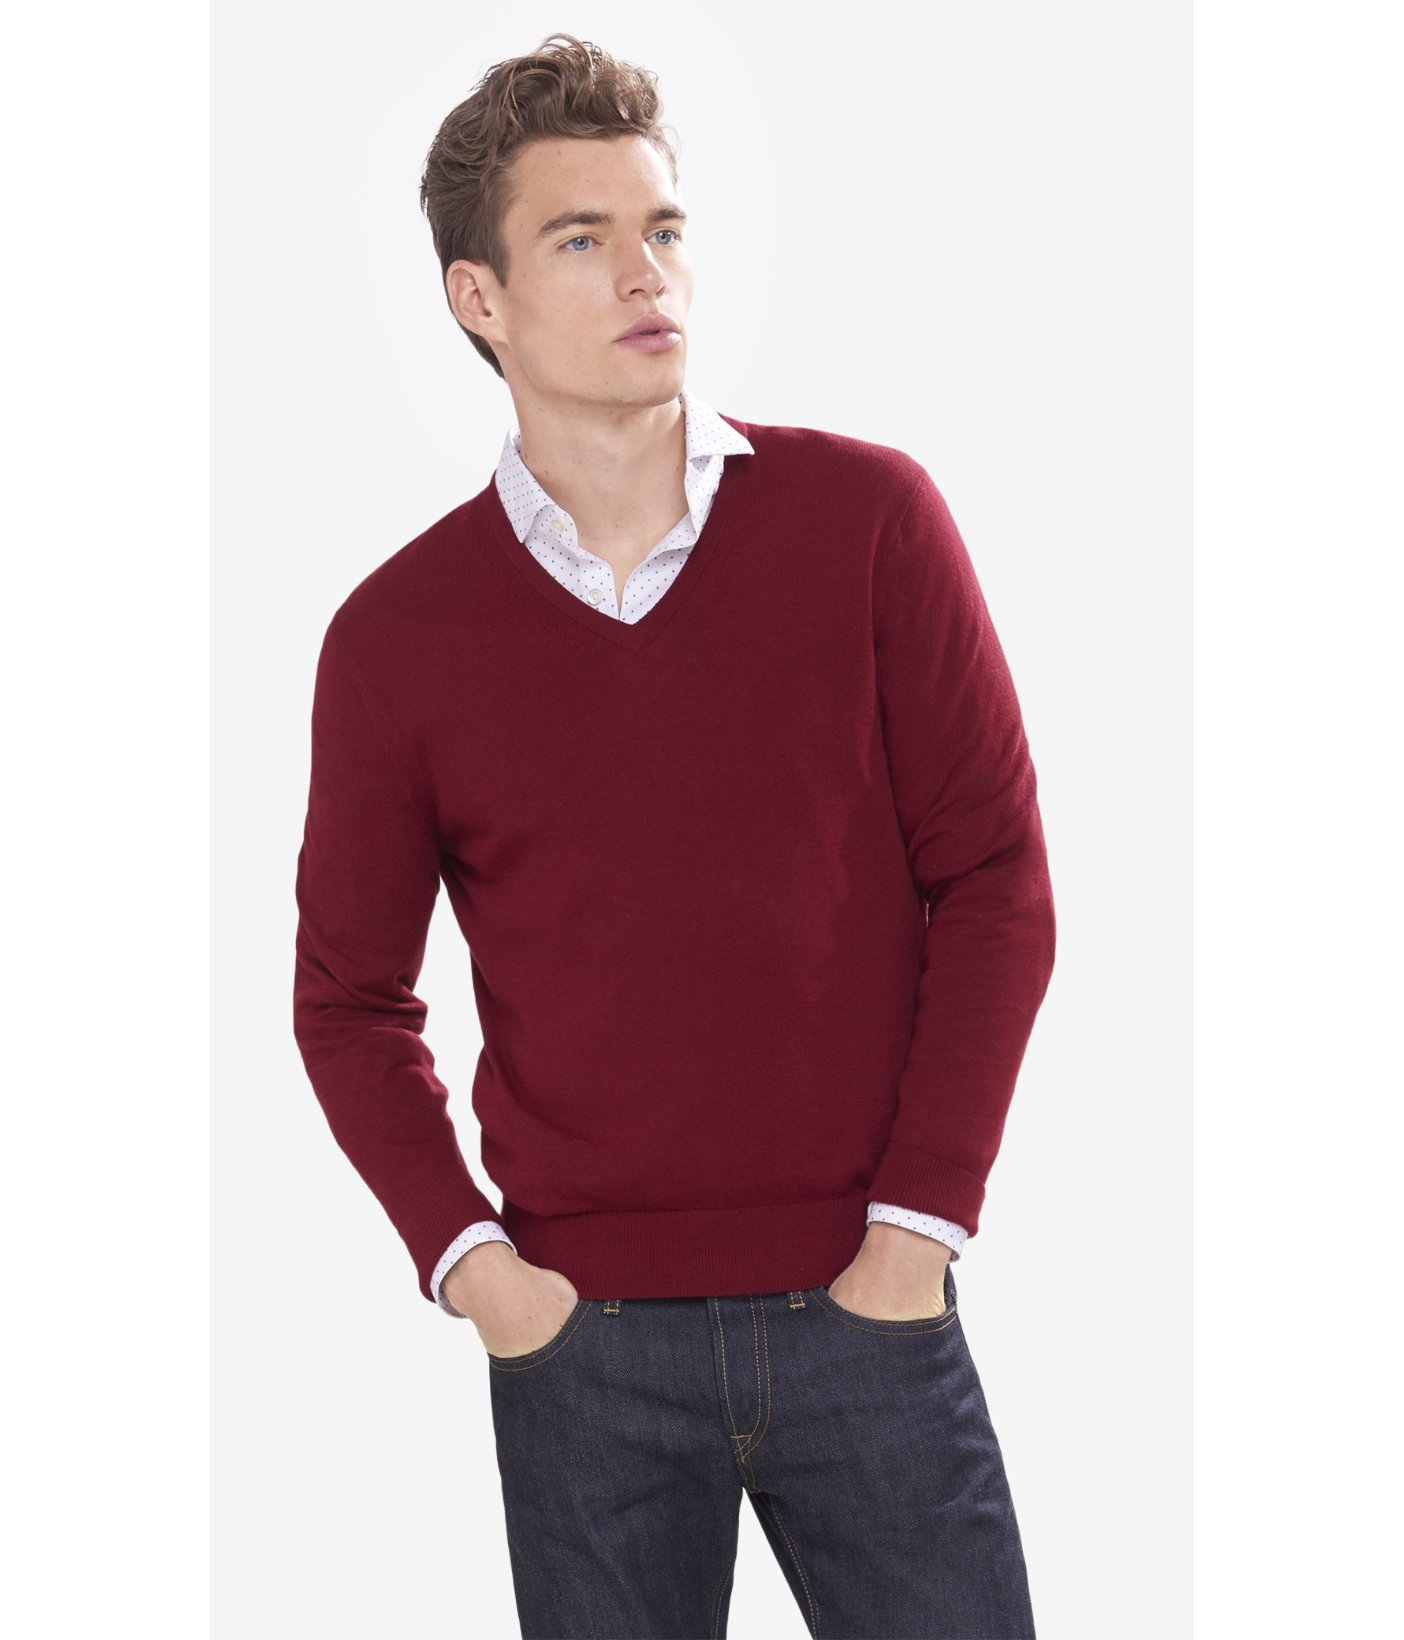 Build up your wardrobe with a versatile and effortlessly stylish v-neck sweater for men. Men's v-neck sweaters from Banana Republic instantly add professional appeal.